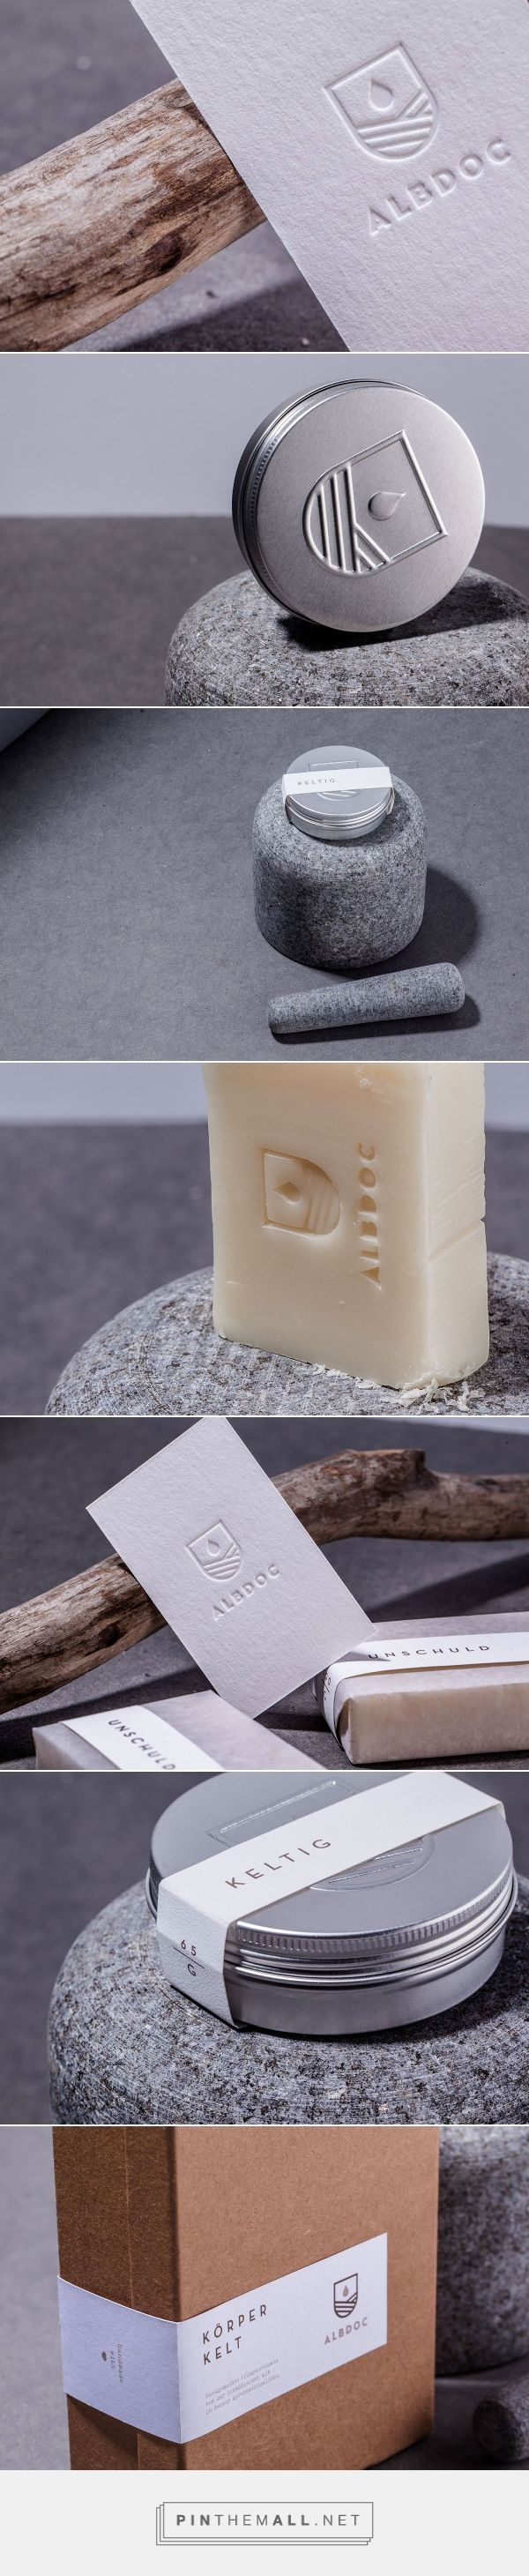 Art direction branding and packaging for Albdoc on Behance by HOCHBURG Design Stuttgart, Germany curated by Packaging Diva PD. Simplicity in packaging at it's finest.